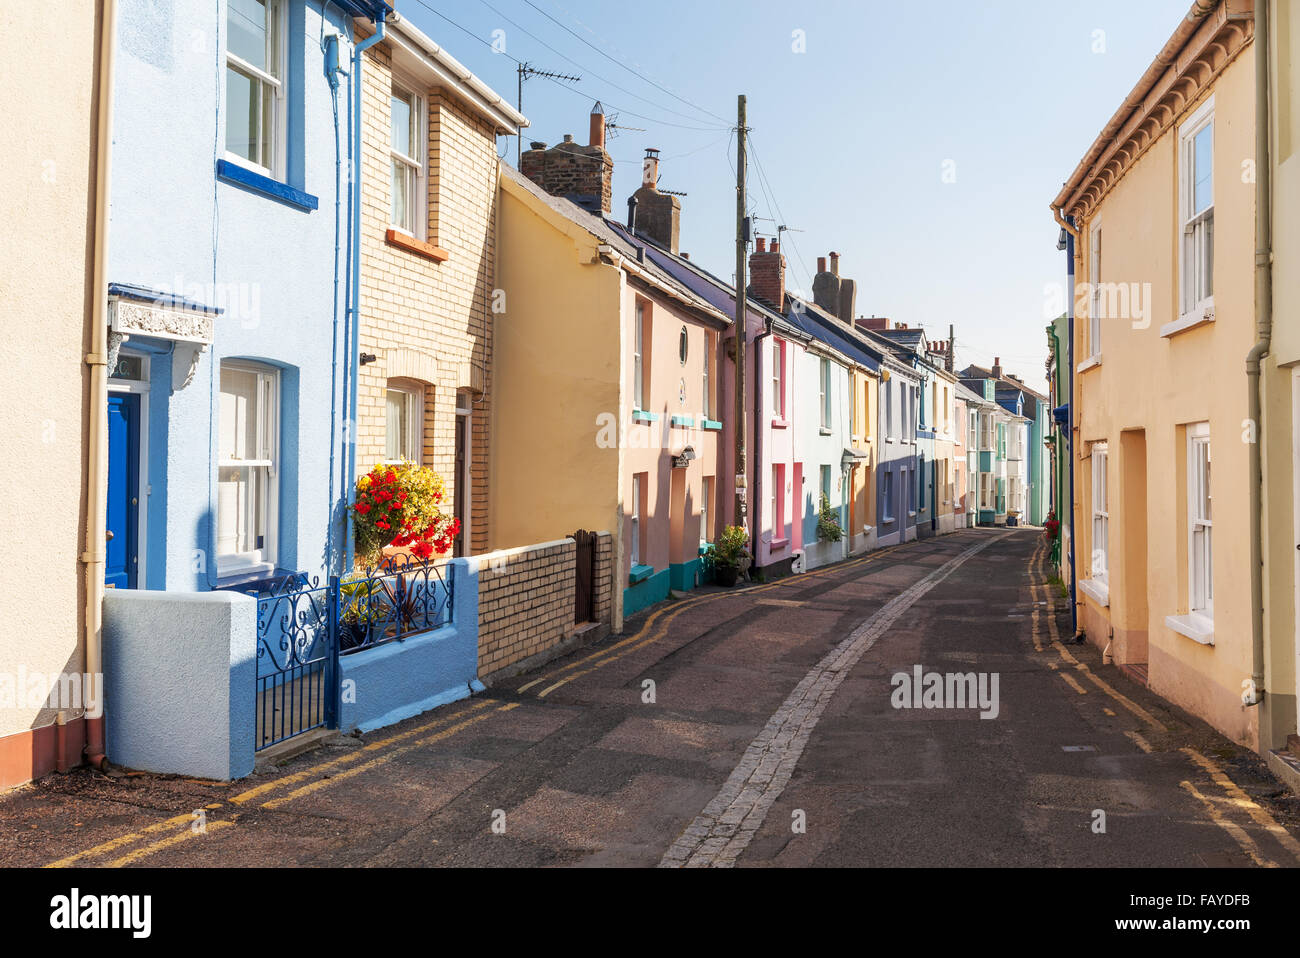 Multi-Colored, casas adosadas en una calle en Appledore, North Devon, Reino Unido Imagen De Stock